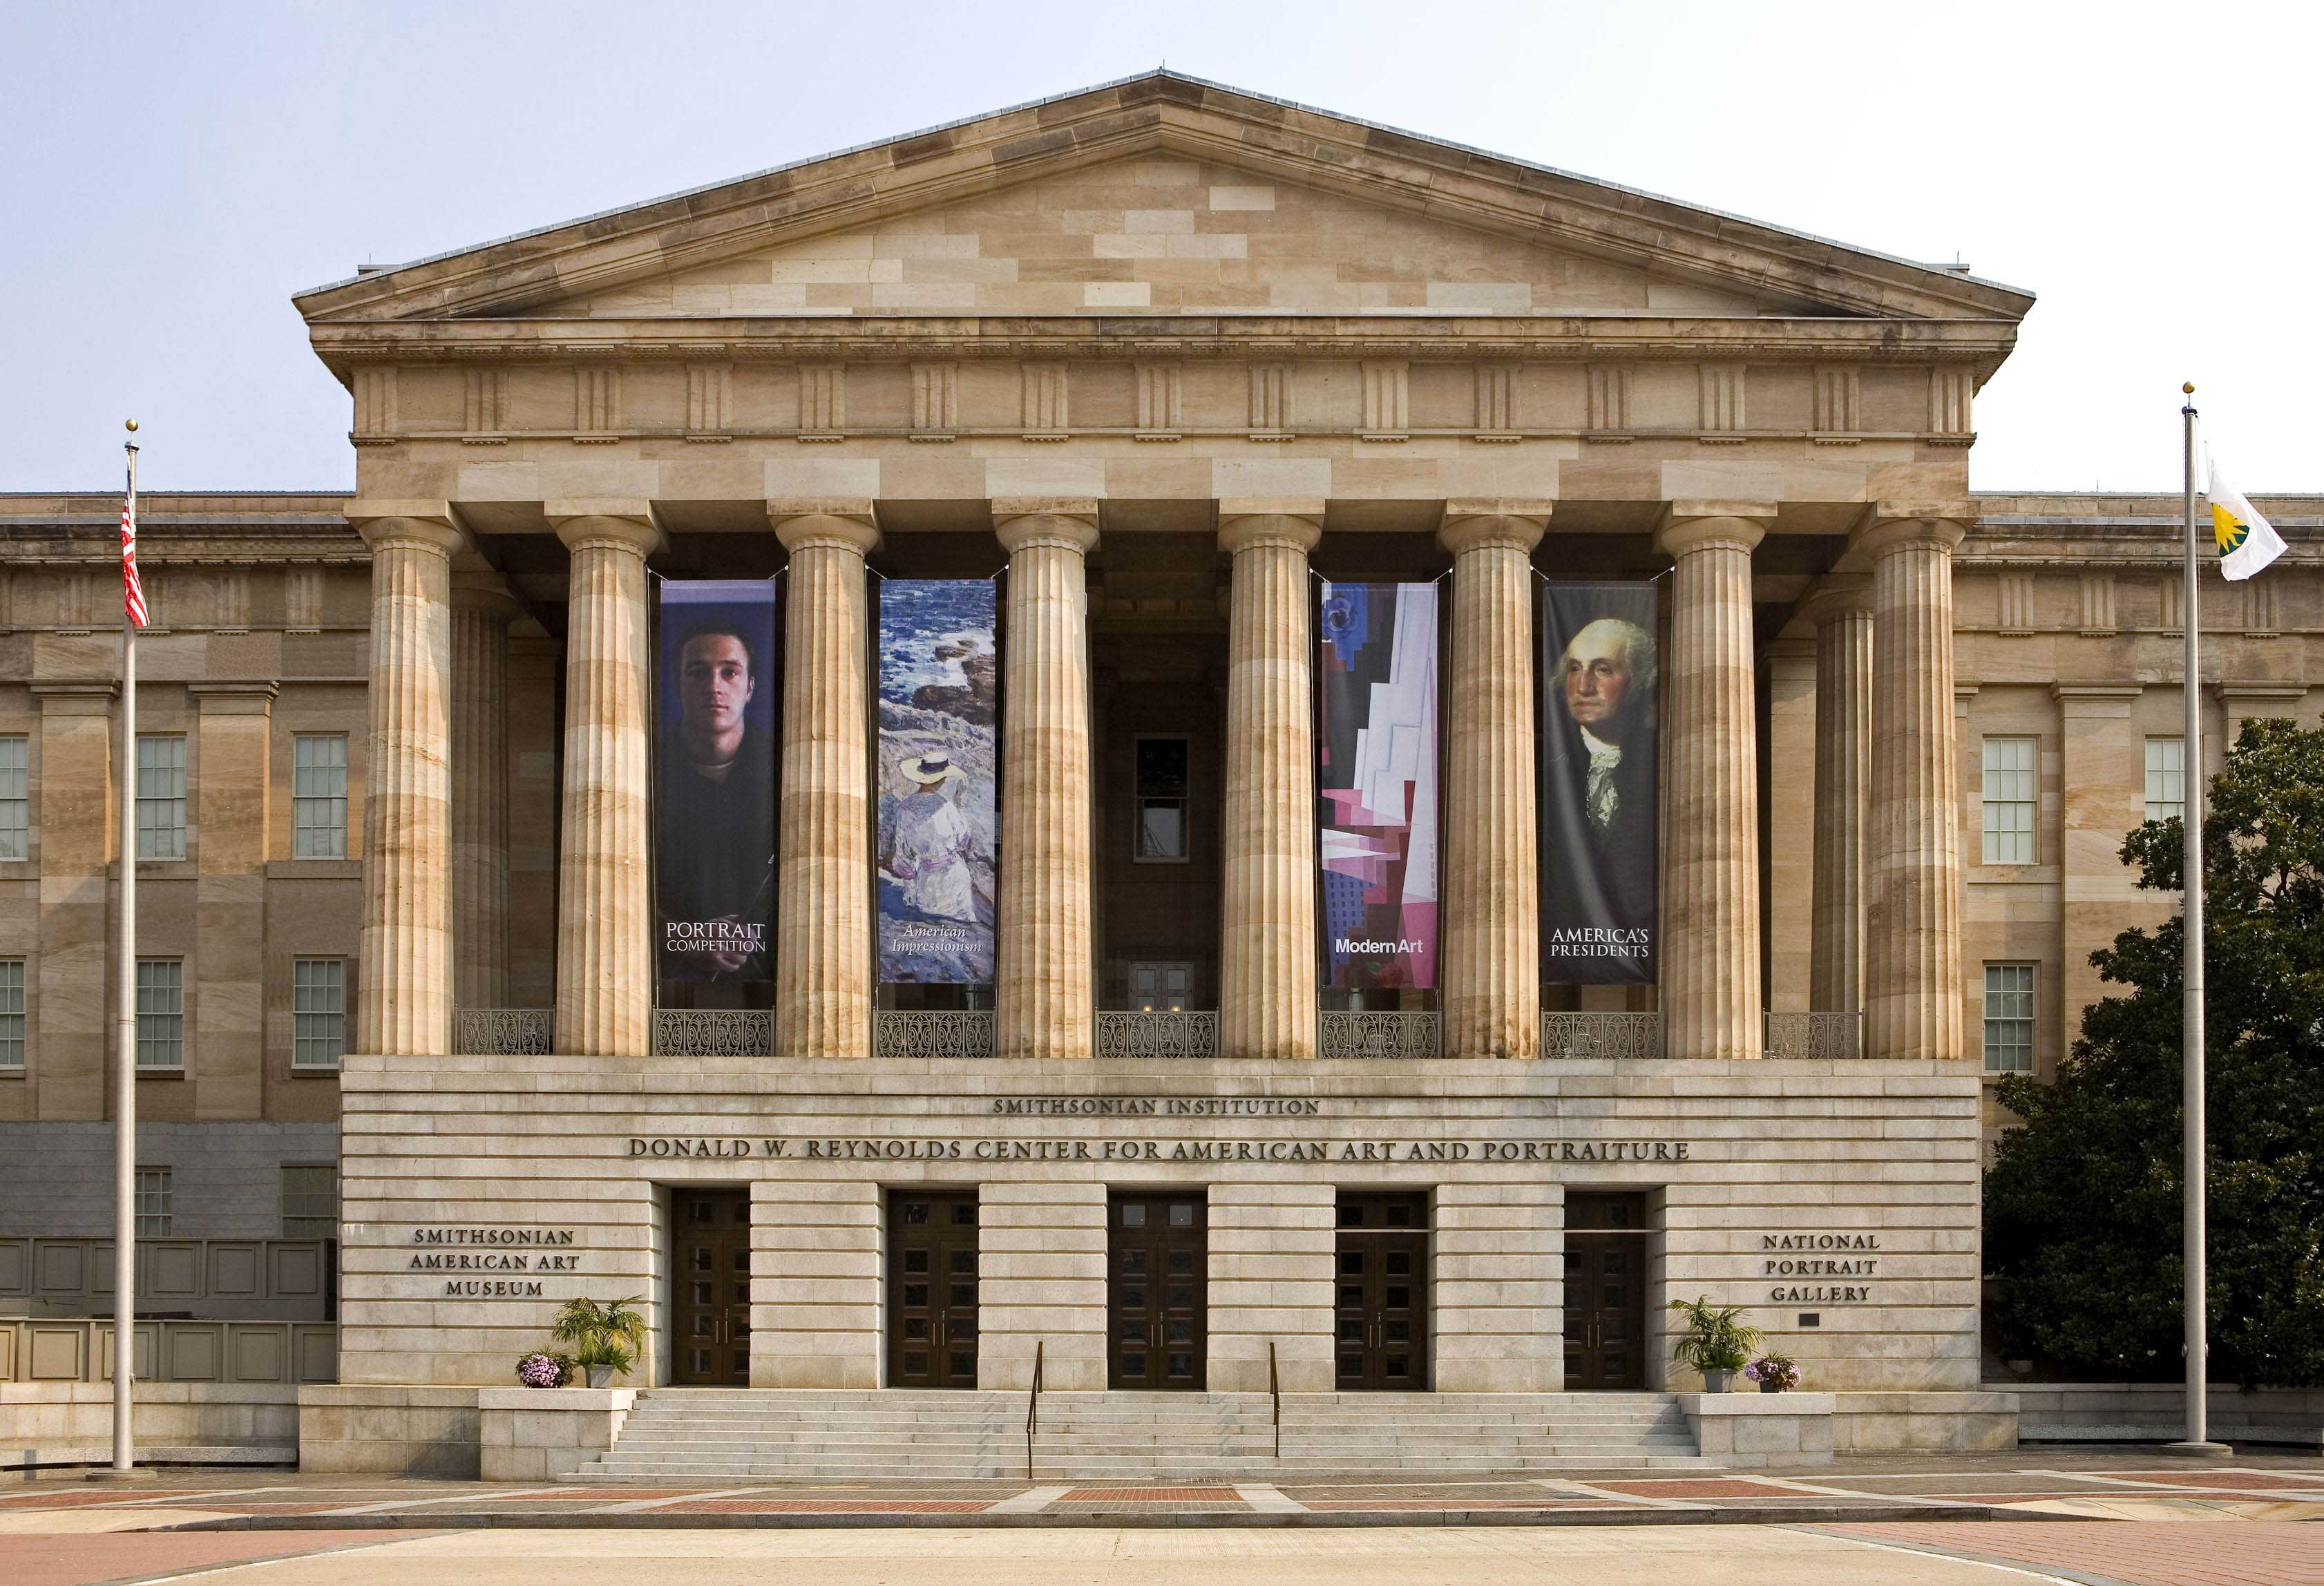 Exterior of National Portrait Gallery